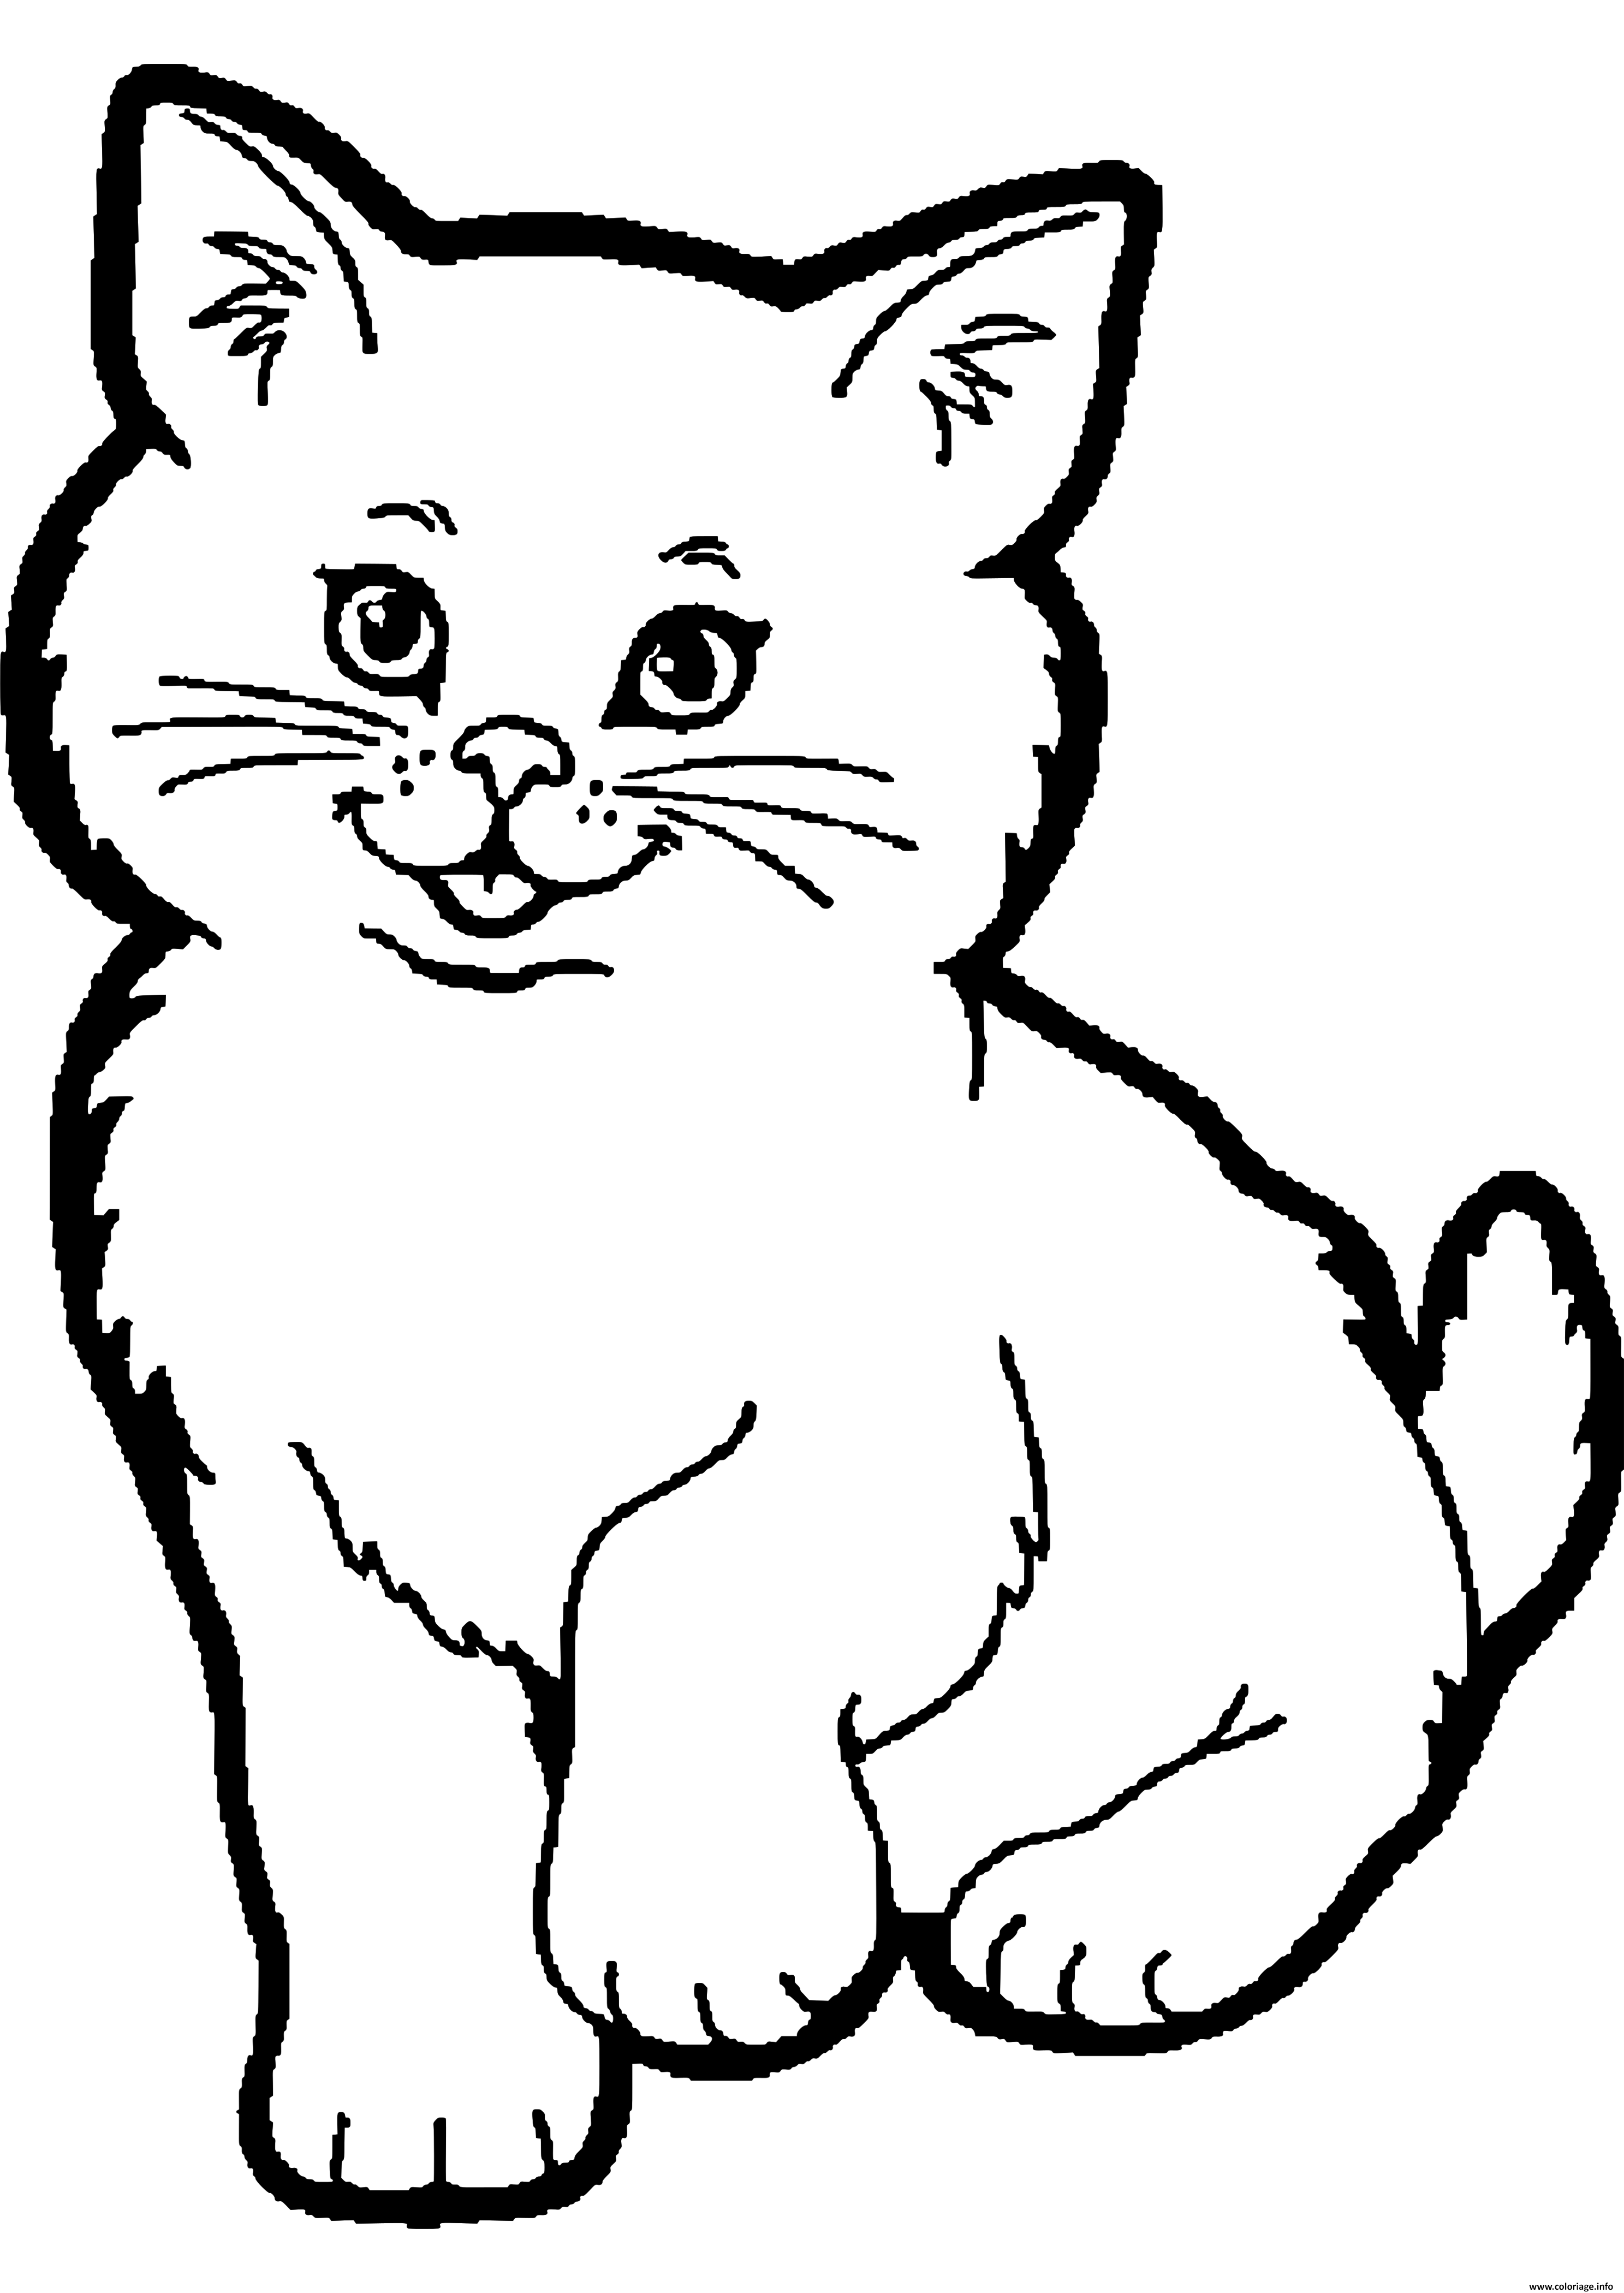 Dessin Chat Png 1 Png Image